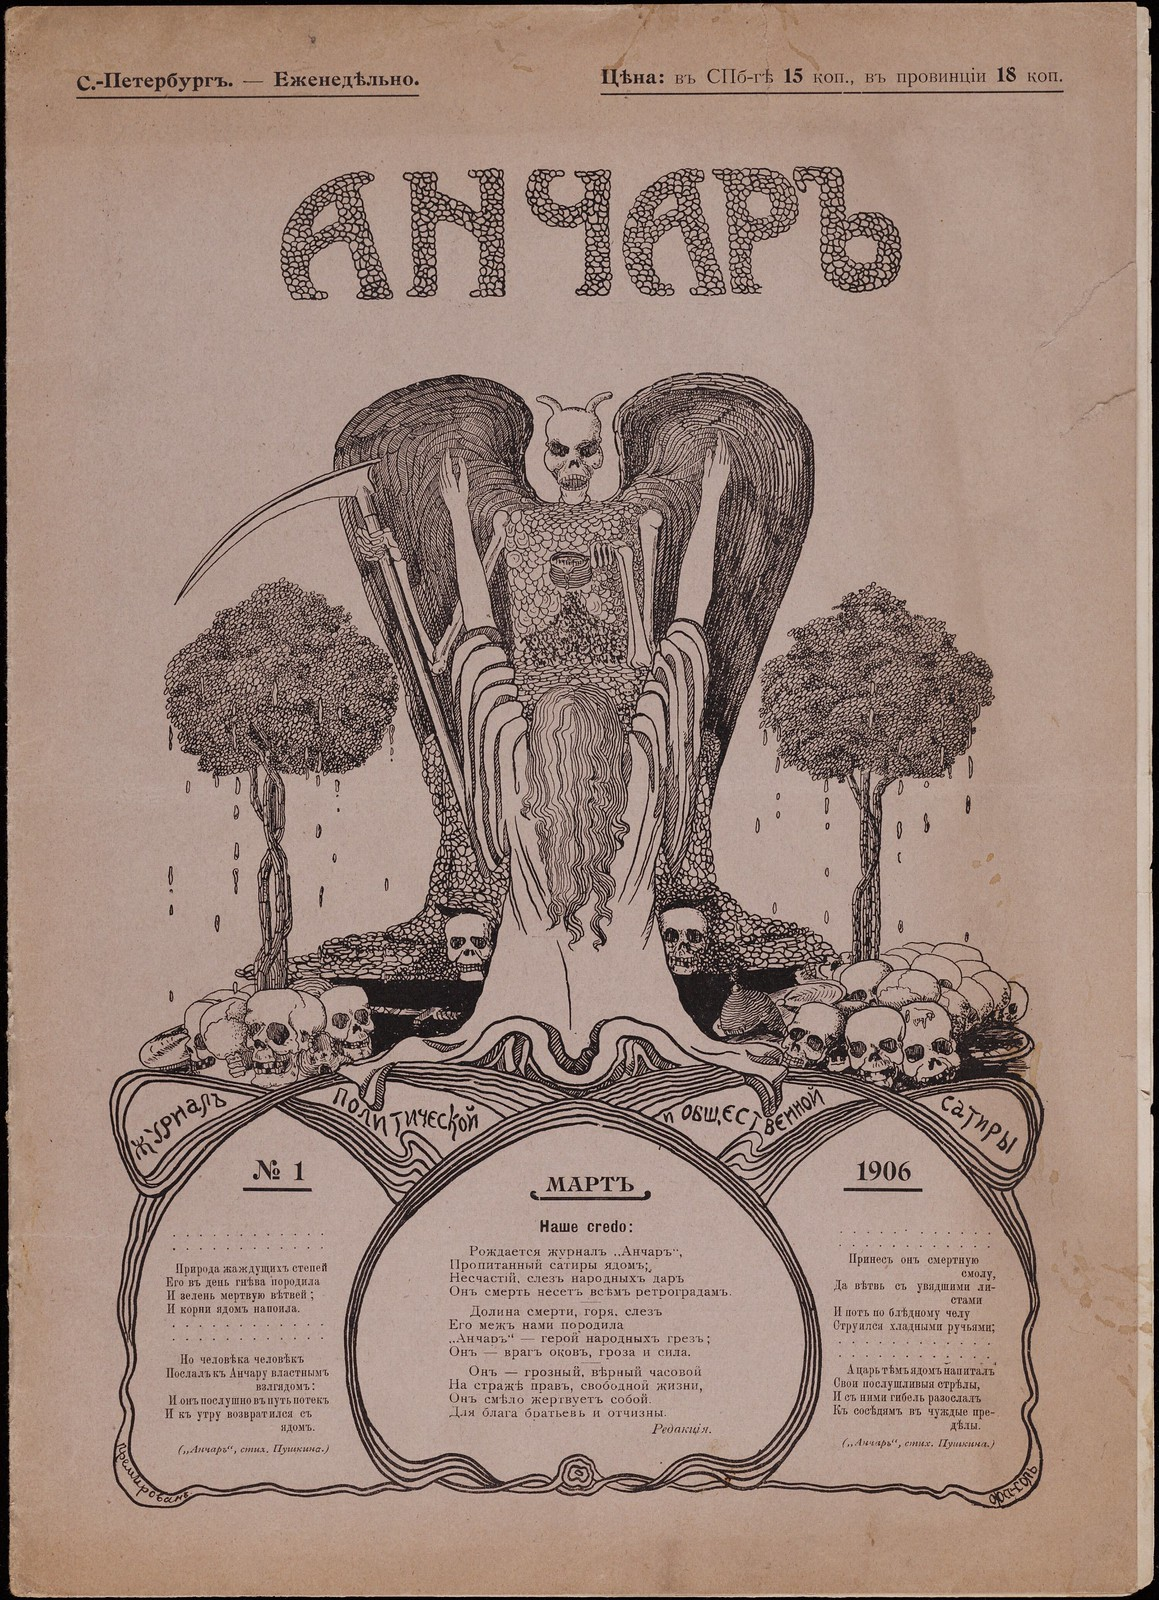 Anchar, Issue 1, 1906